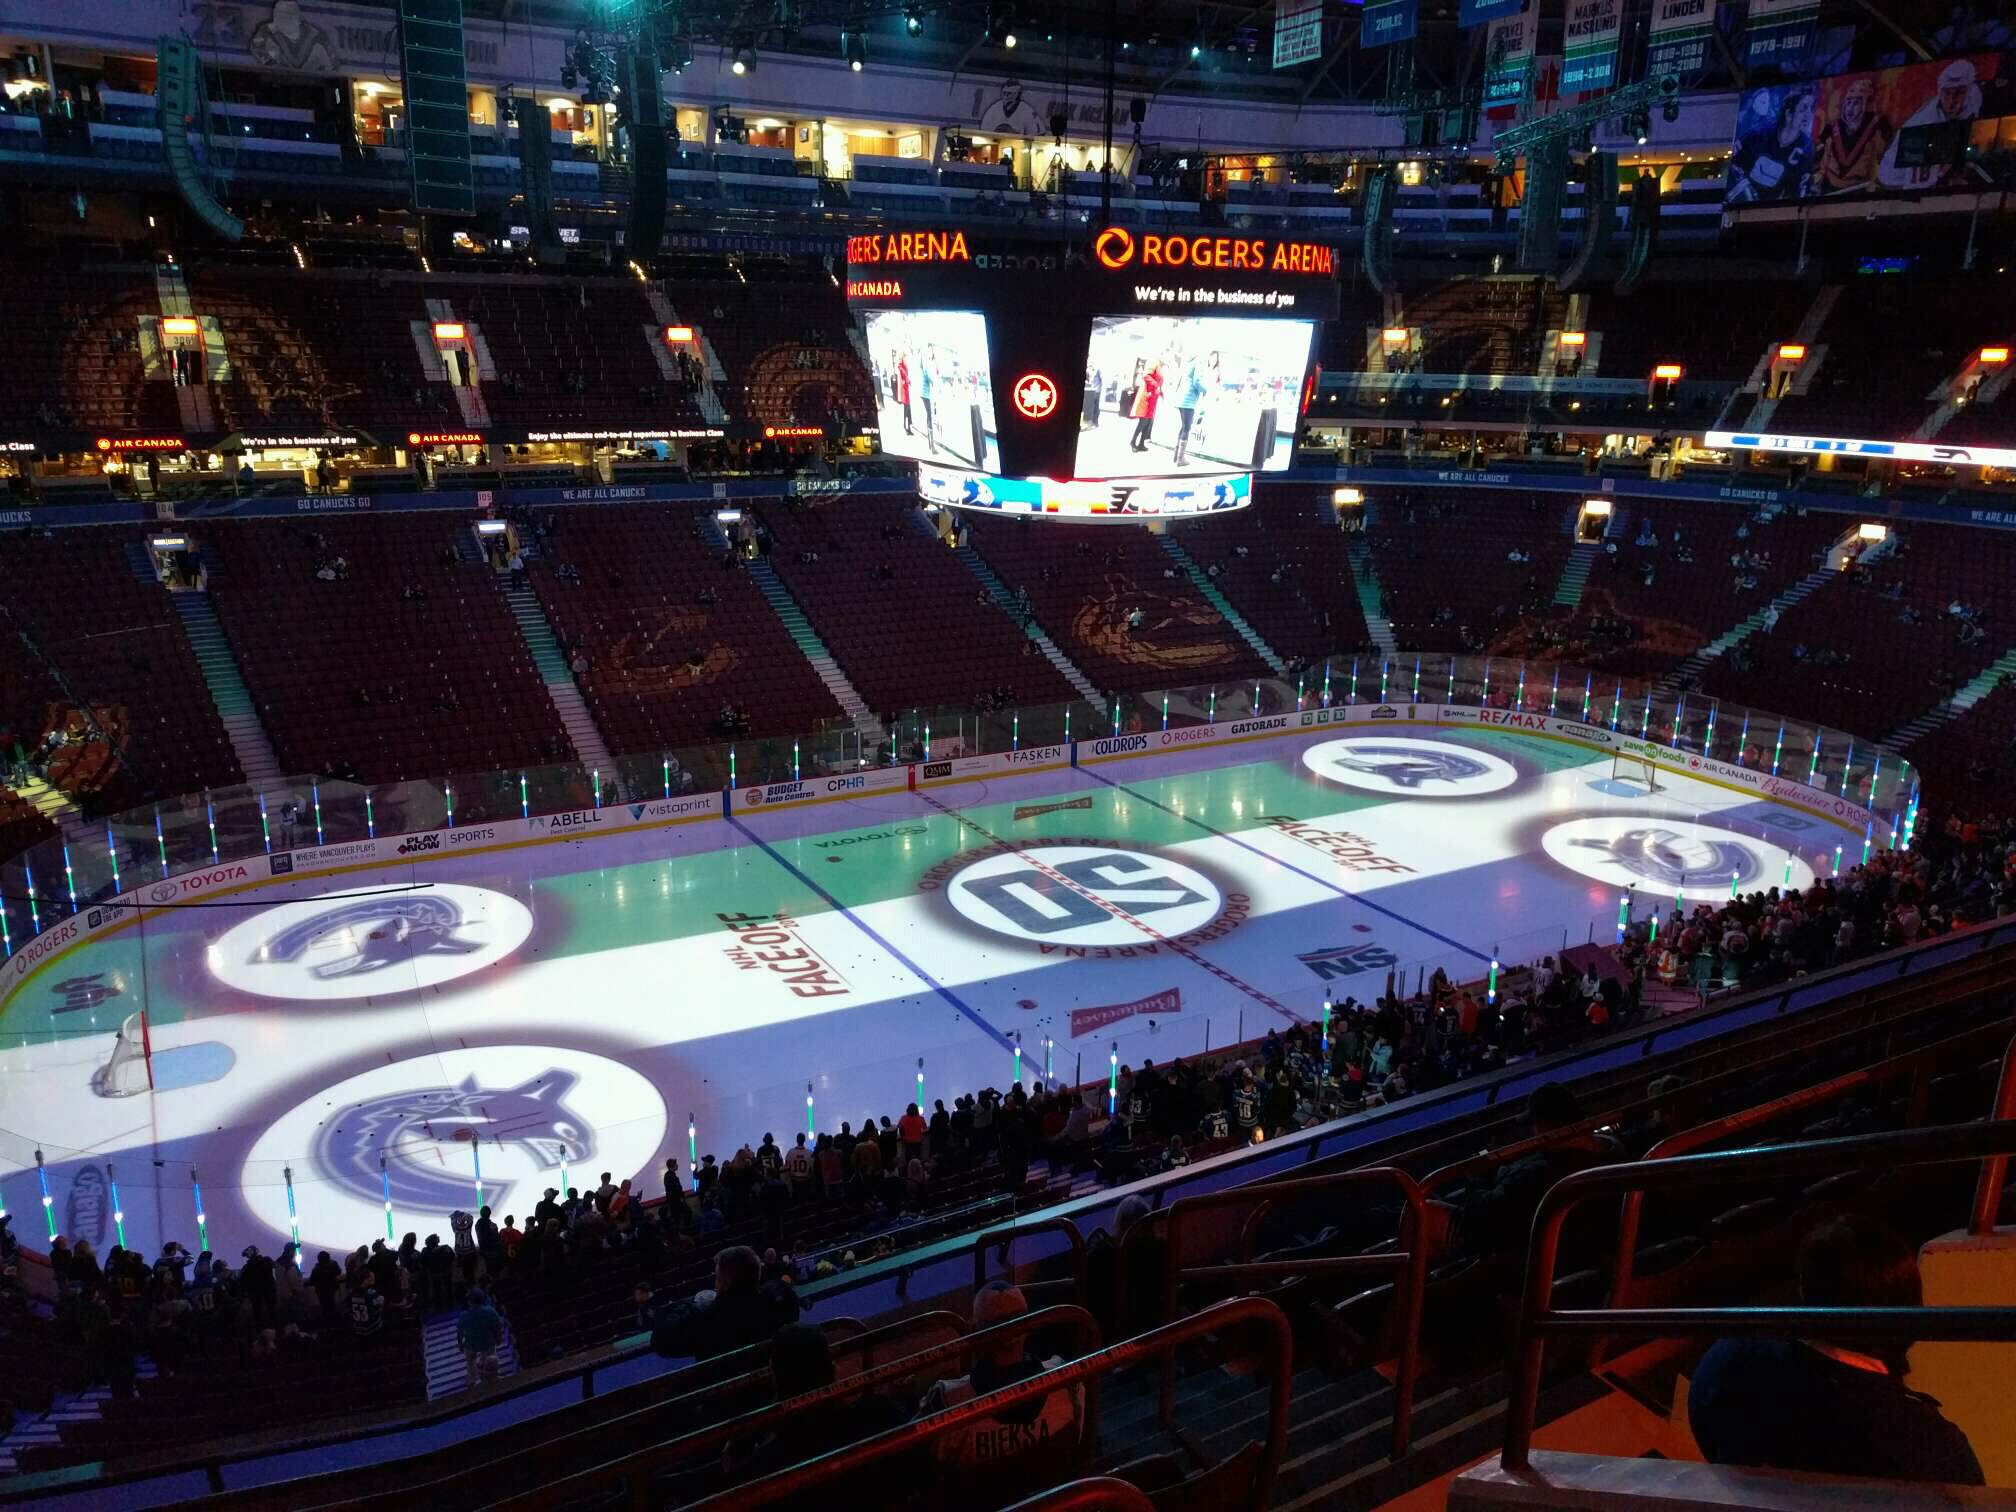 Rogers Arena Section 325 Row 8 Seat 103